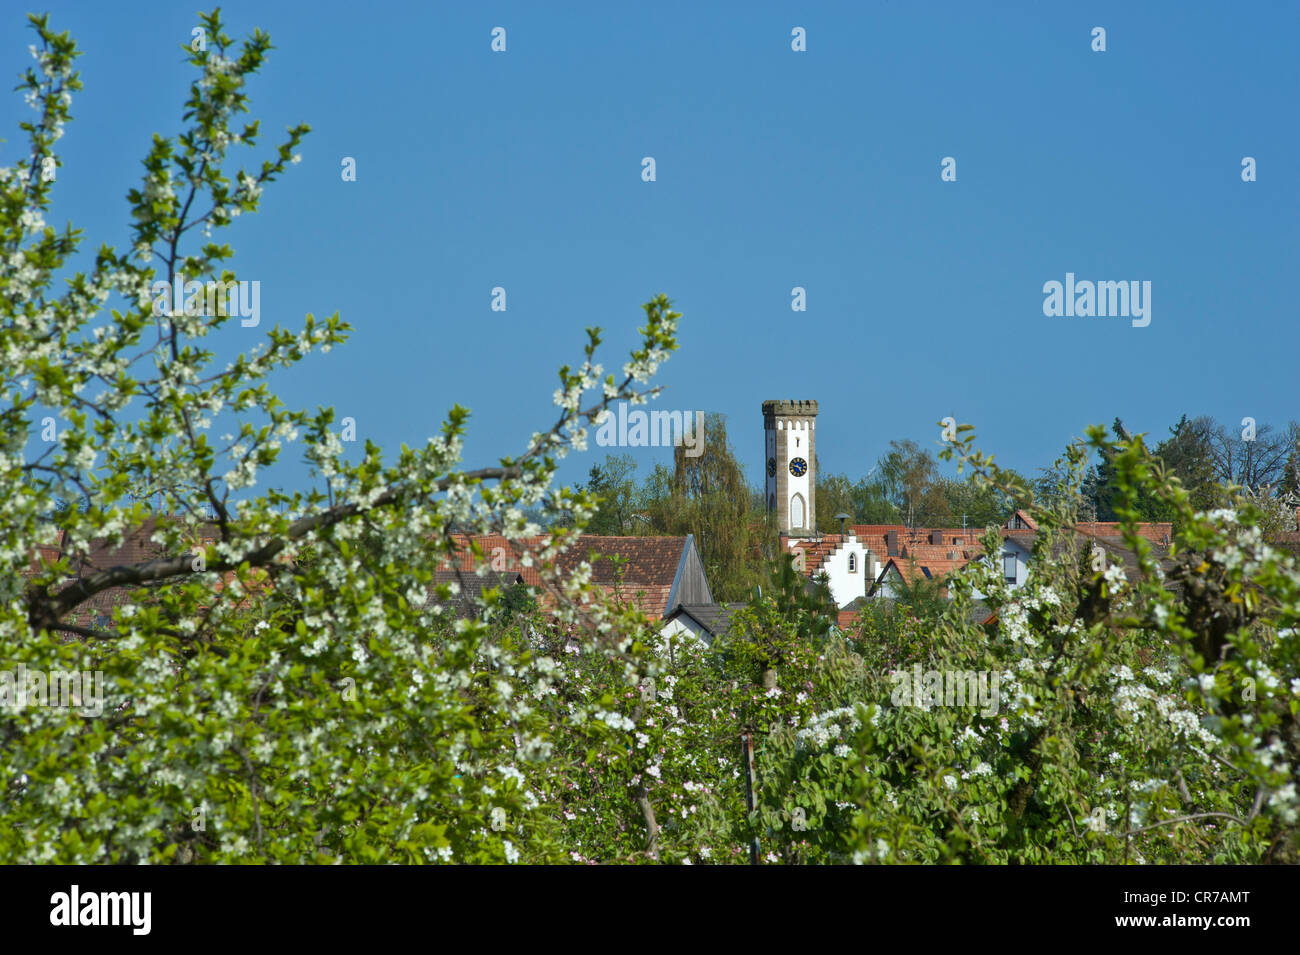 Townscape with Tuermel tower and apple tree blossom, Oberhausen, Pfalz, Rhineland-Palatinate, Germany, Europe Stock Photo